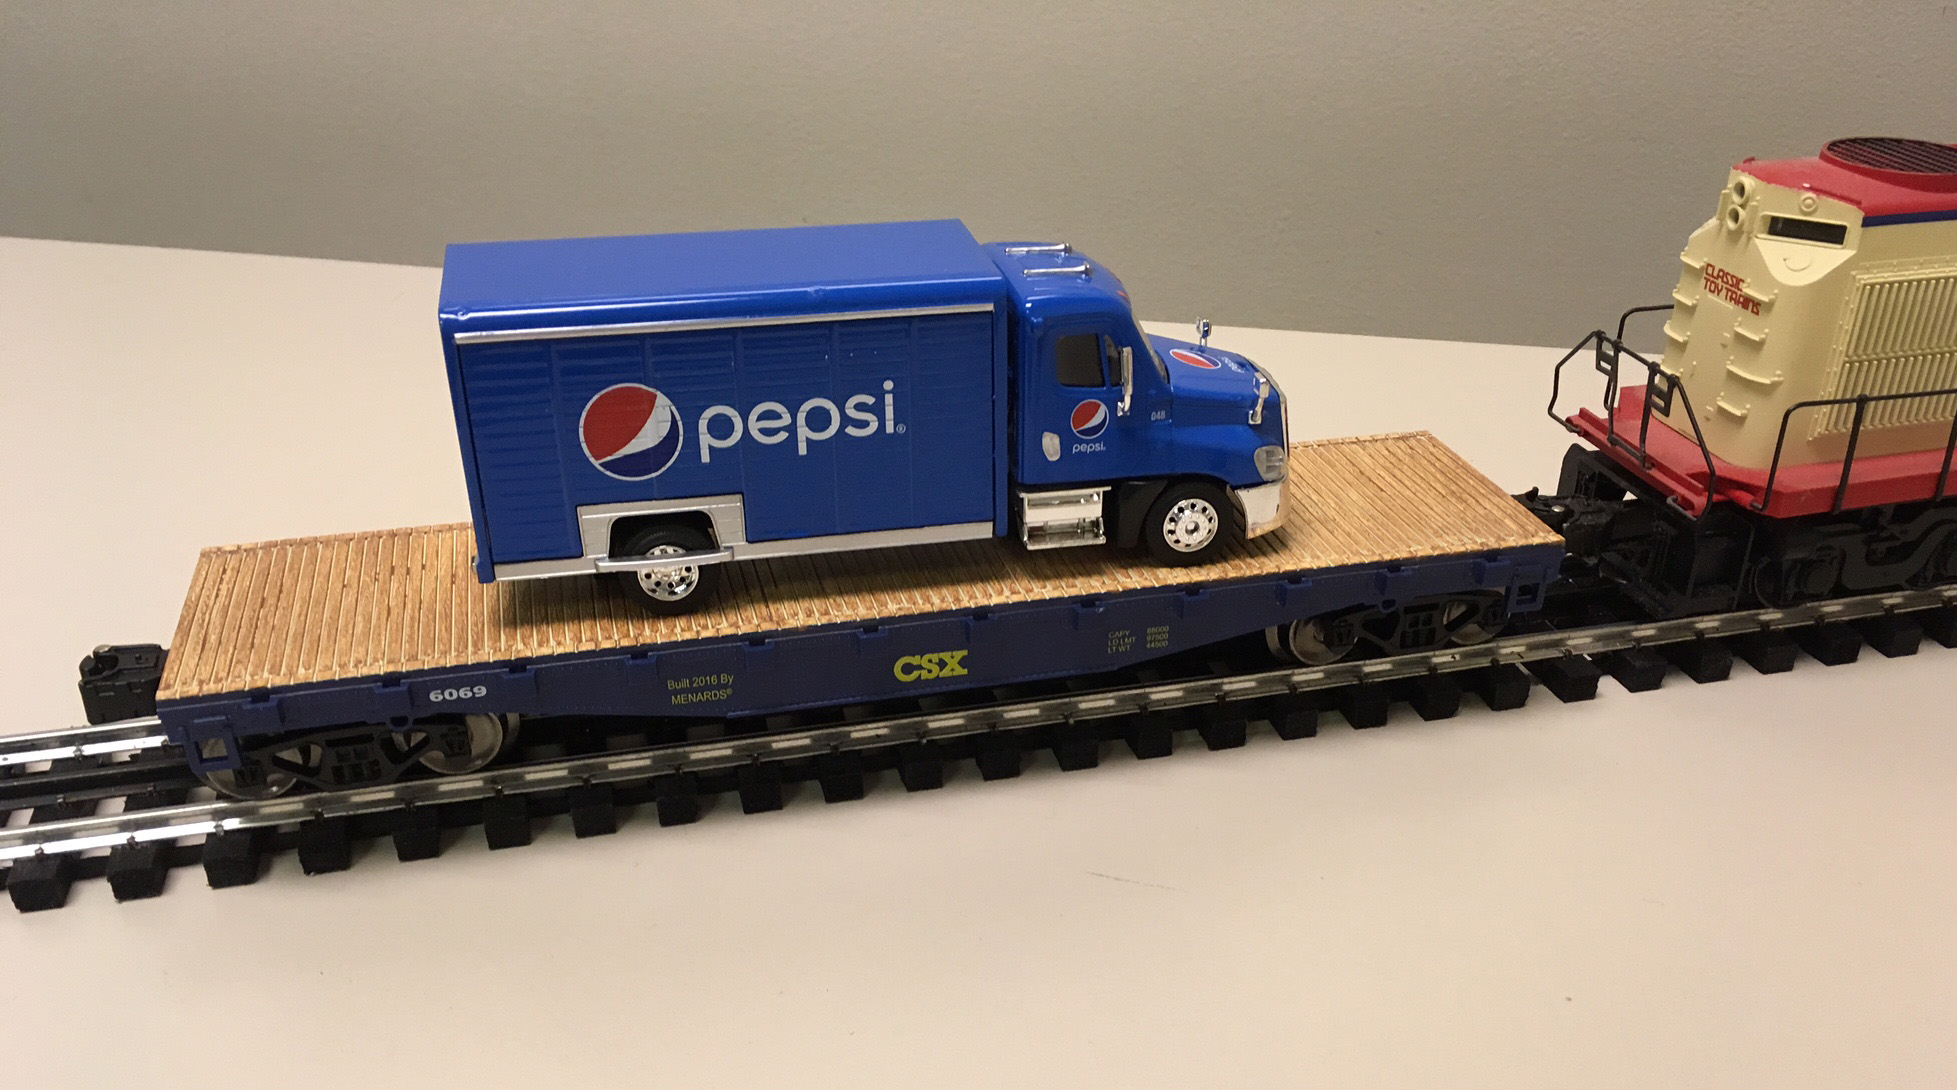 The New Flatcar With Pepsi Cola Delivery Truck Load From Menards - Does menards deliver